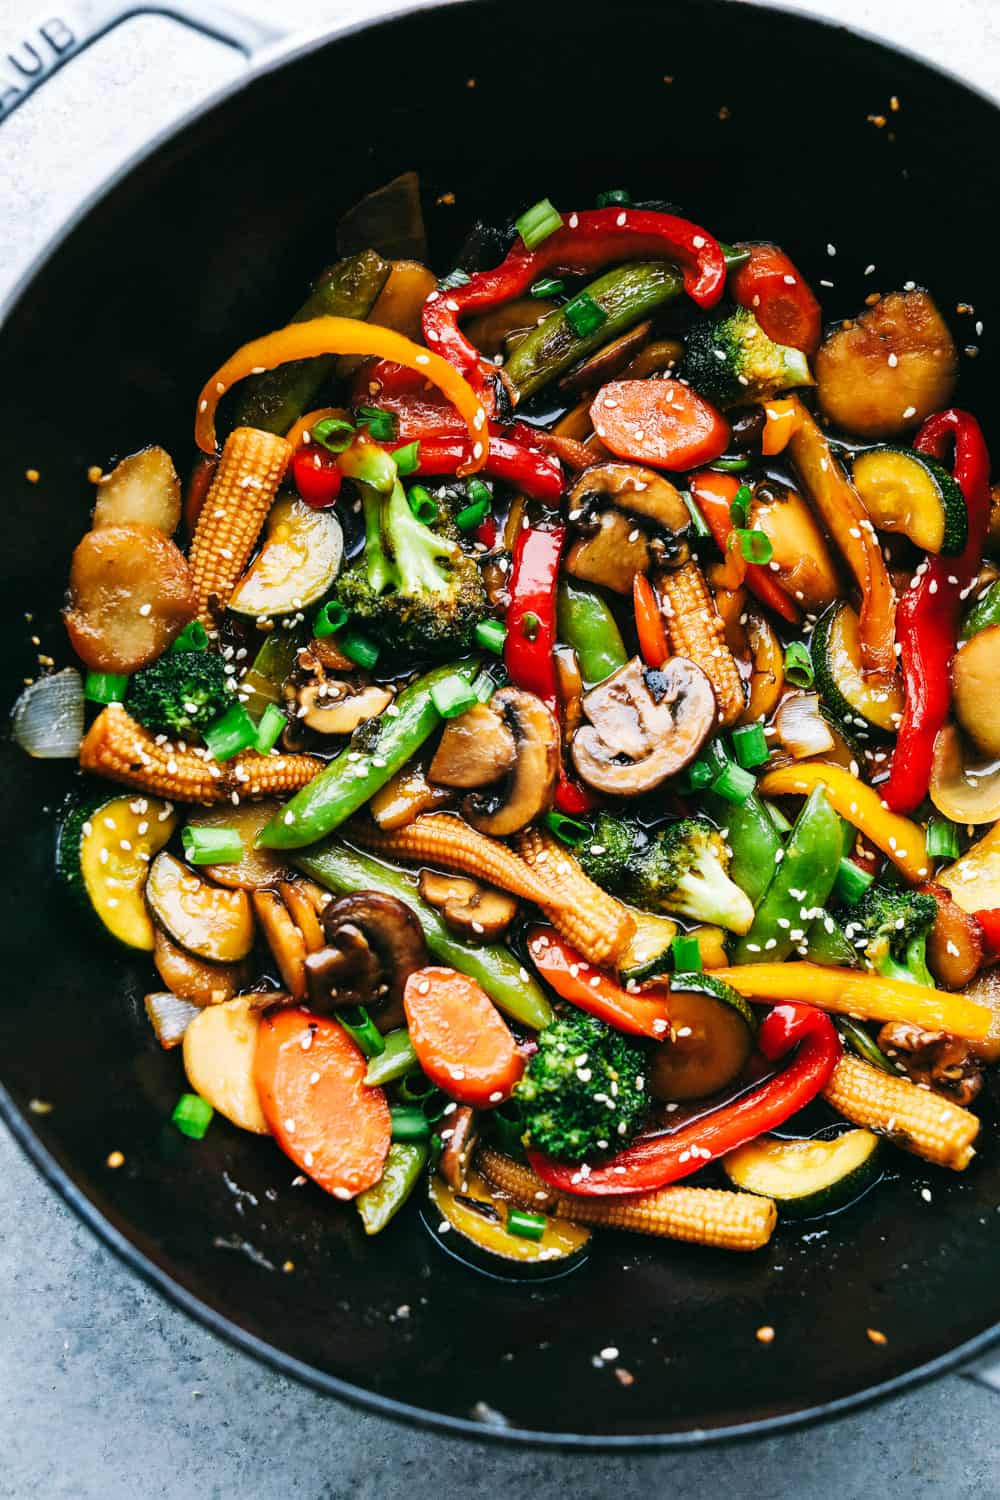 Chinese Stir Fry Recipes  Easiest Ve able Stir Fry